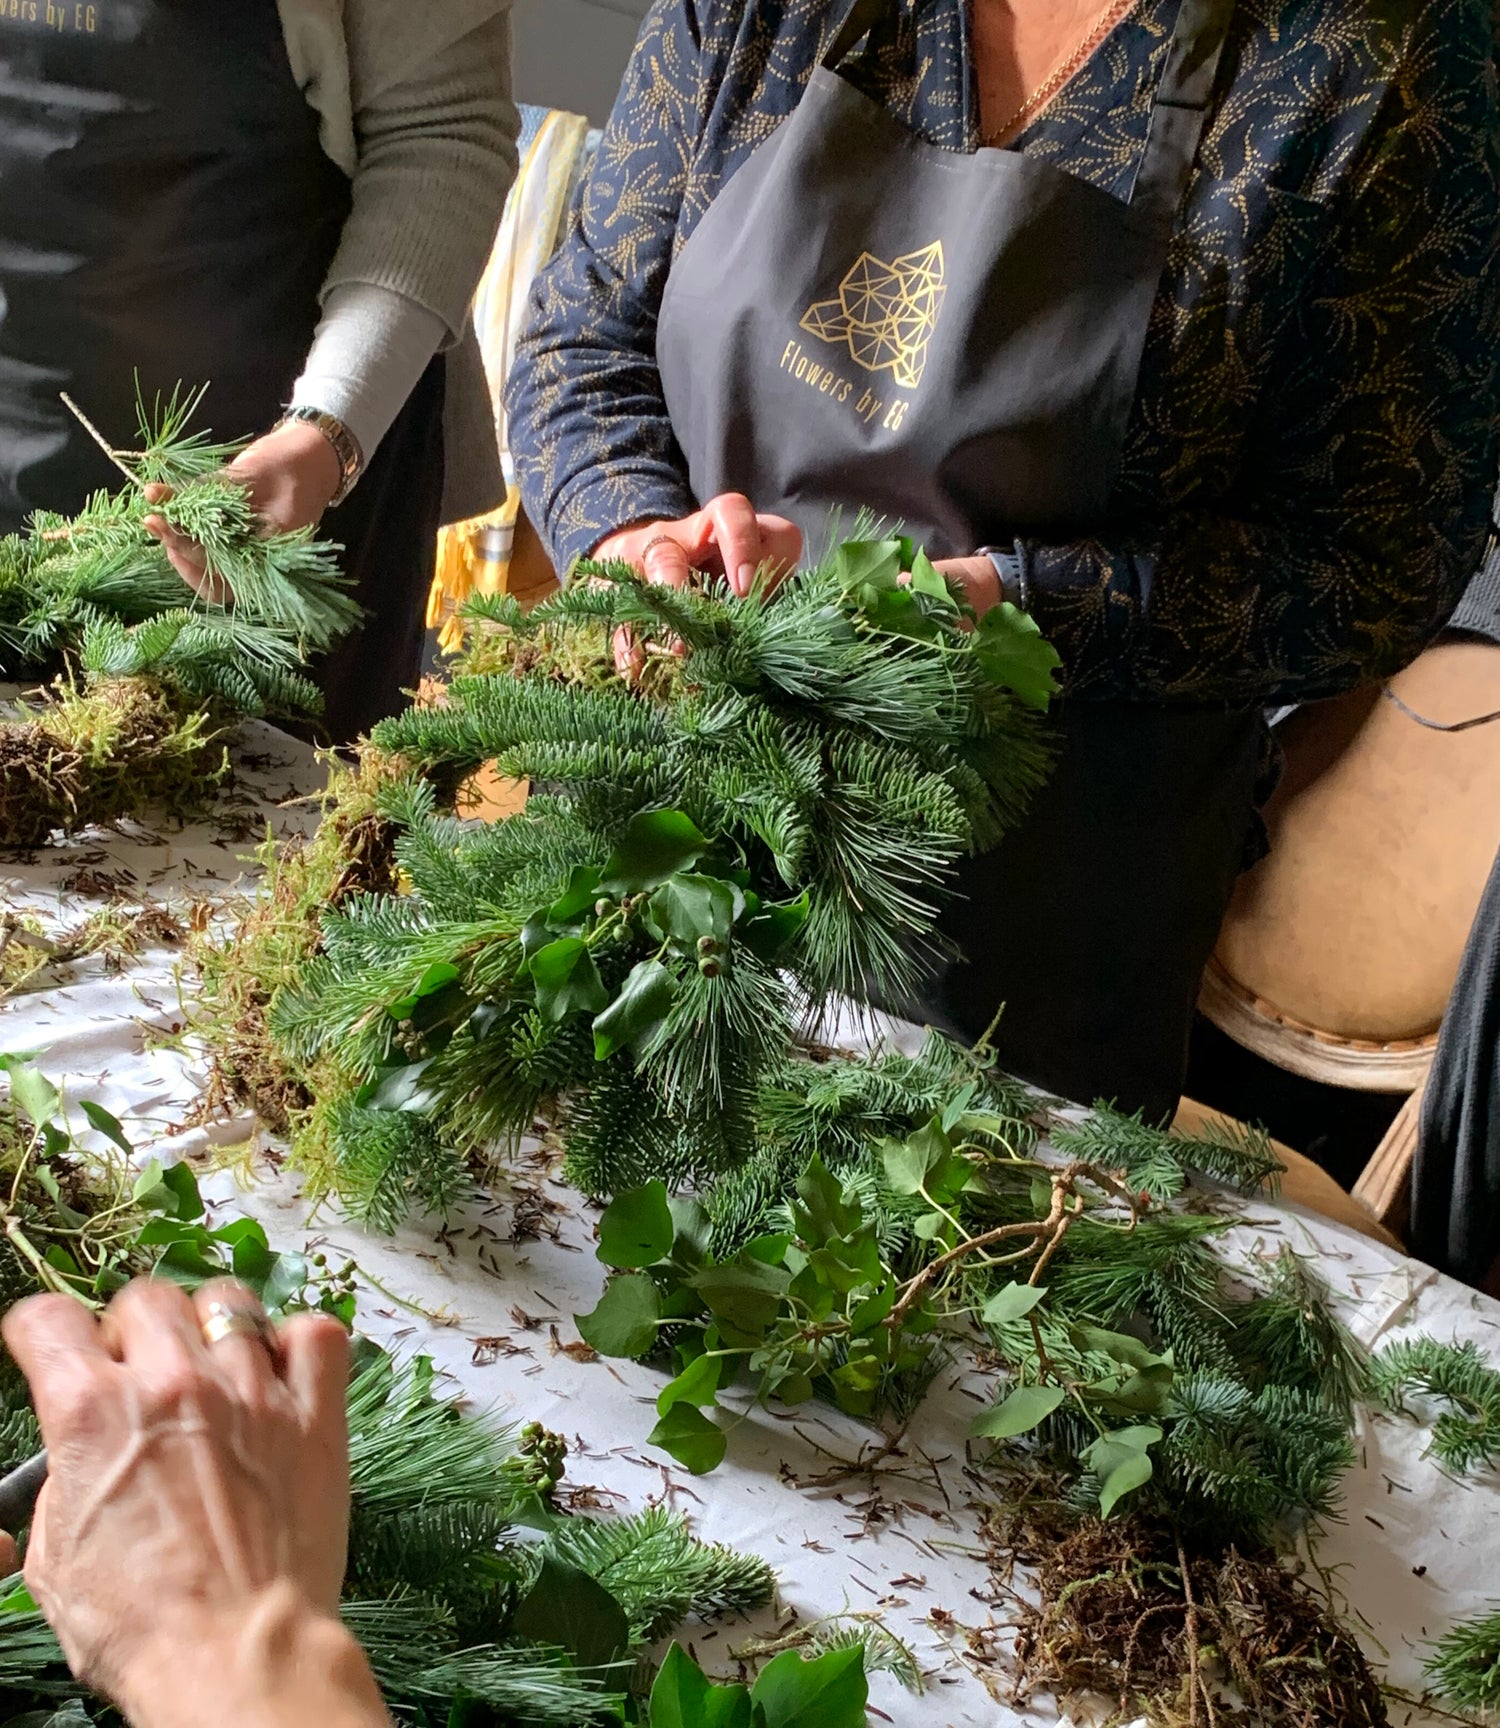 Wine Tasting and Wreath Making For 6 People @ 10:00 on 6th Dec